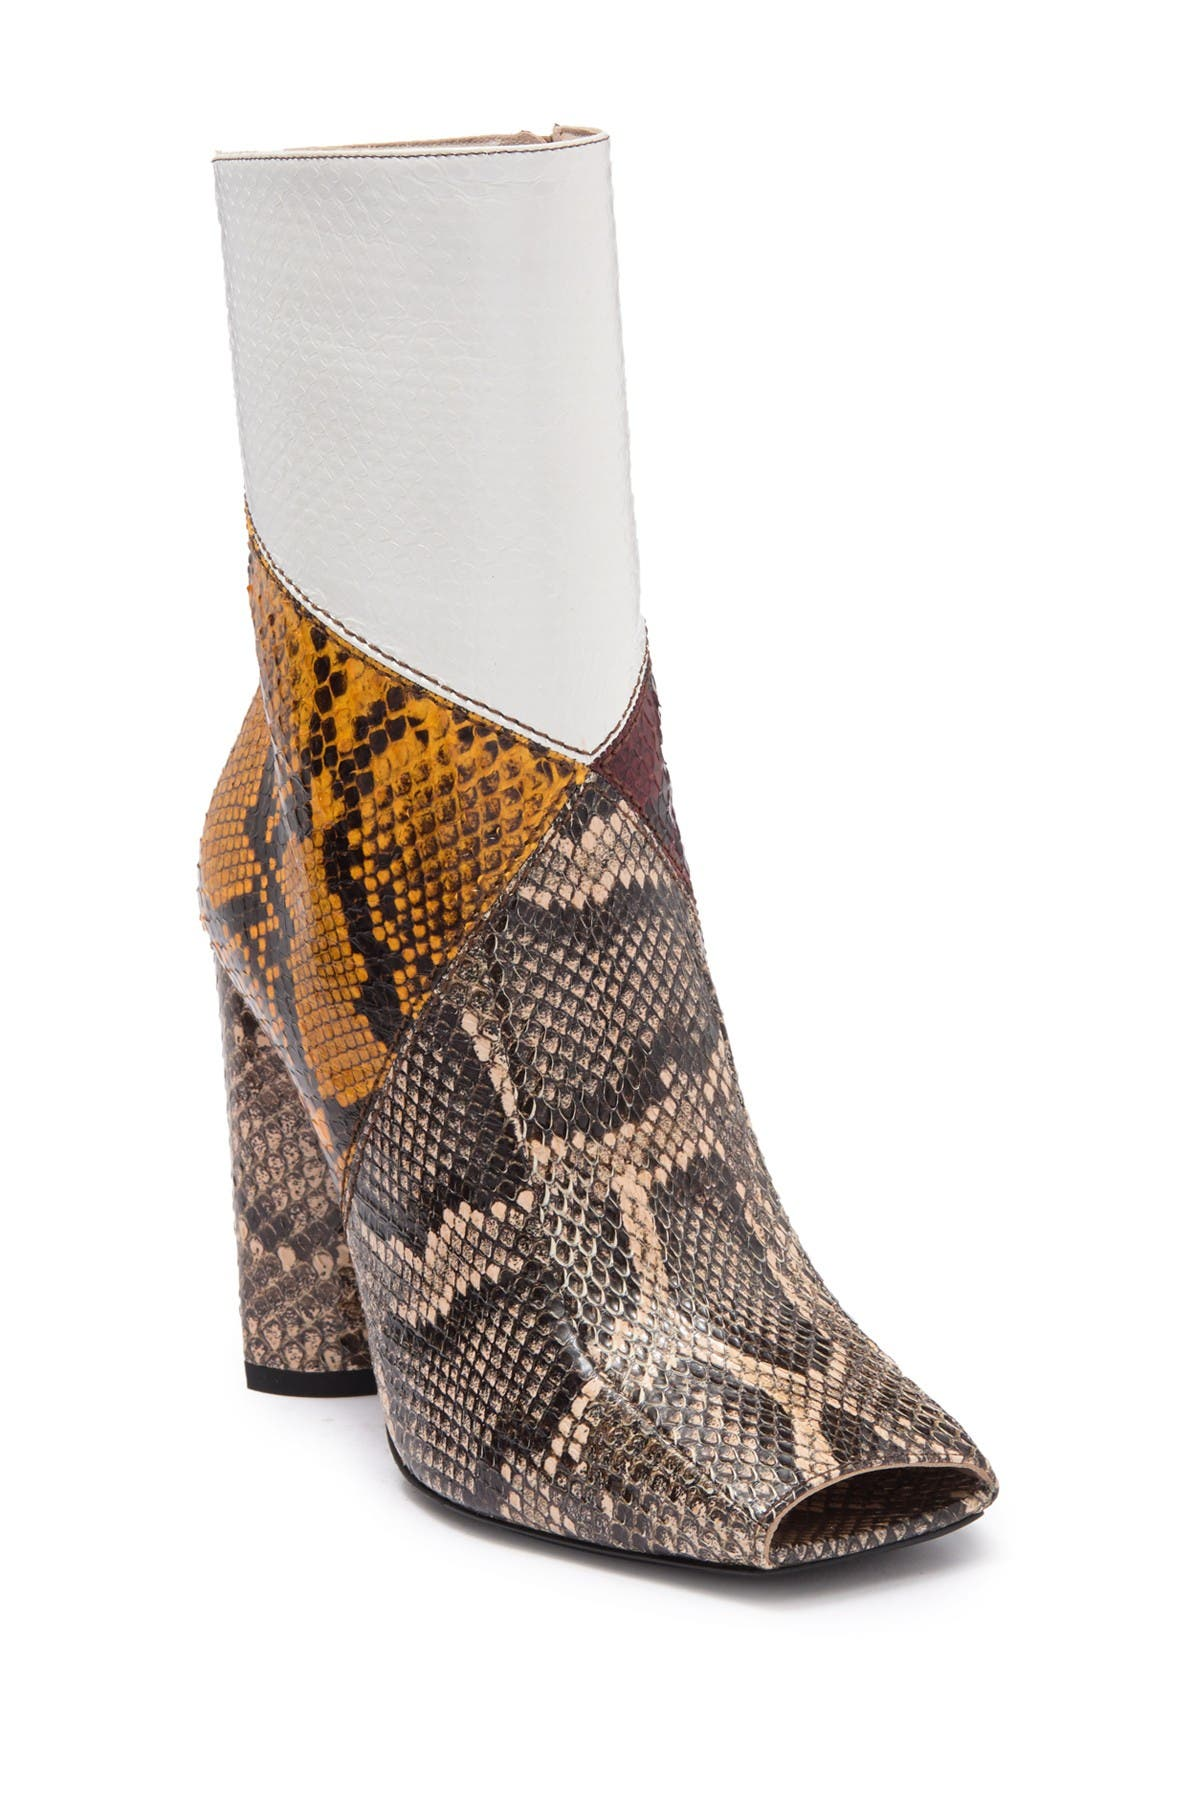 Image of Roberto Cavalli Square Toe Color Block Snake Embossed Ankle Boot